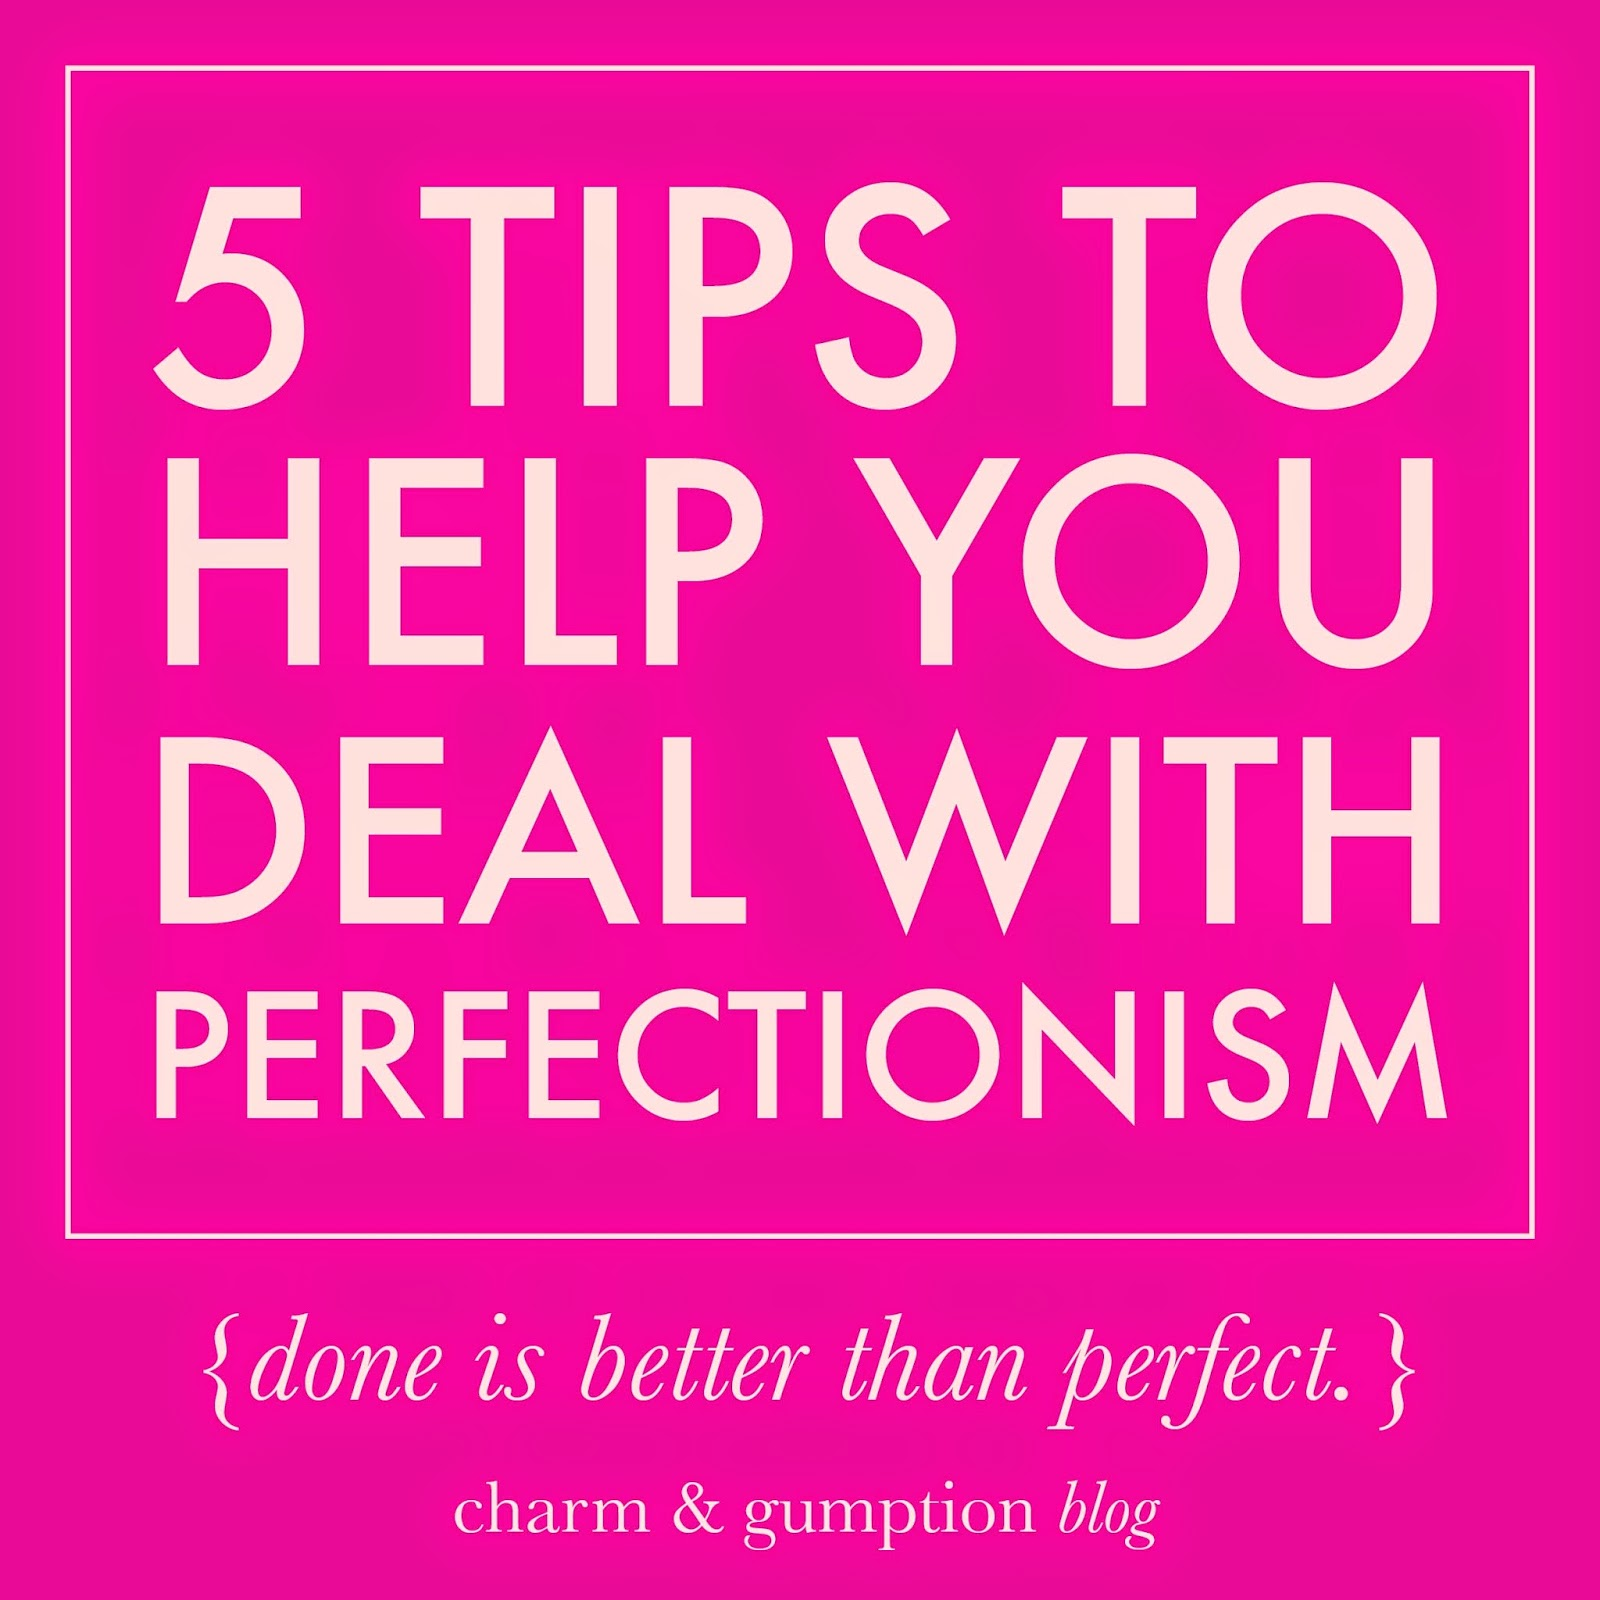 5 TIPS FOR DEALING WITH PERFECTIONISM (BEING A PERFECTIONIST REALLY SUCKS)